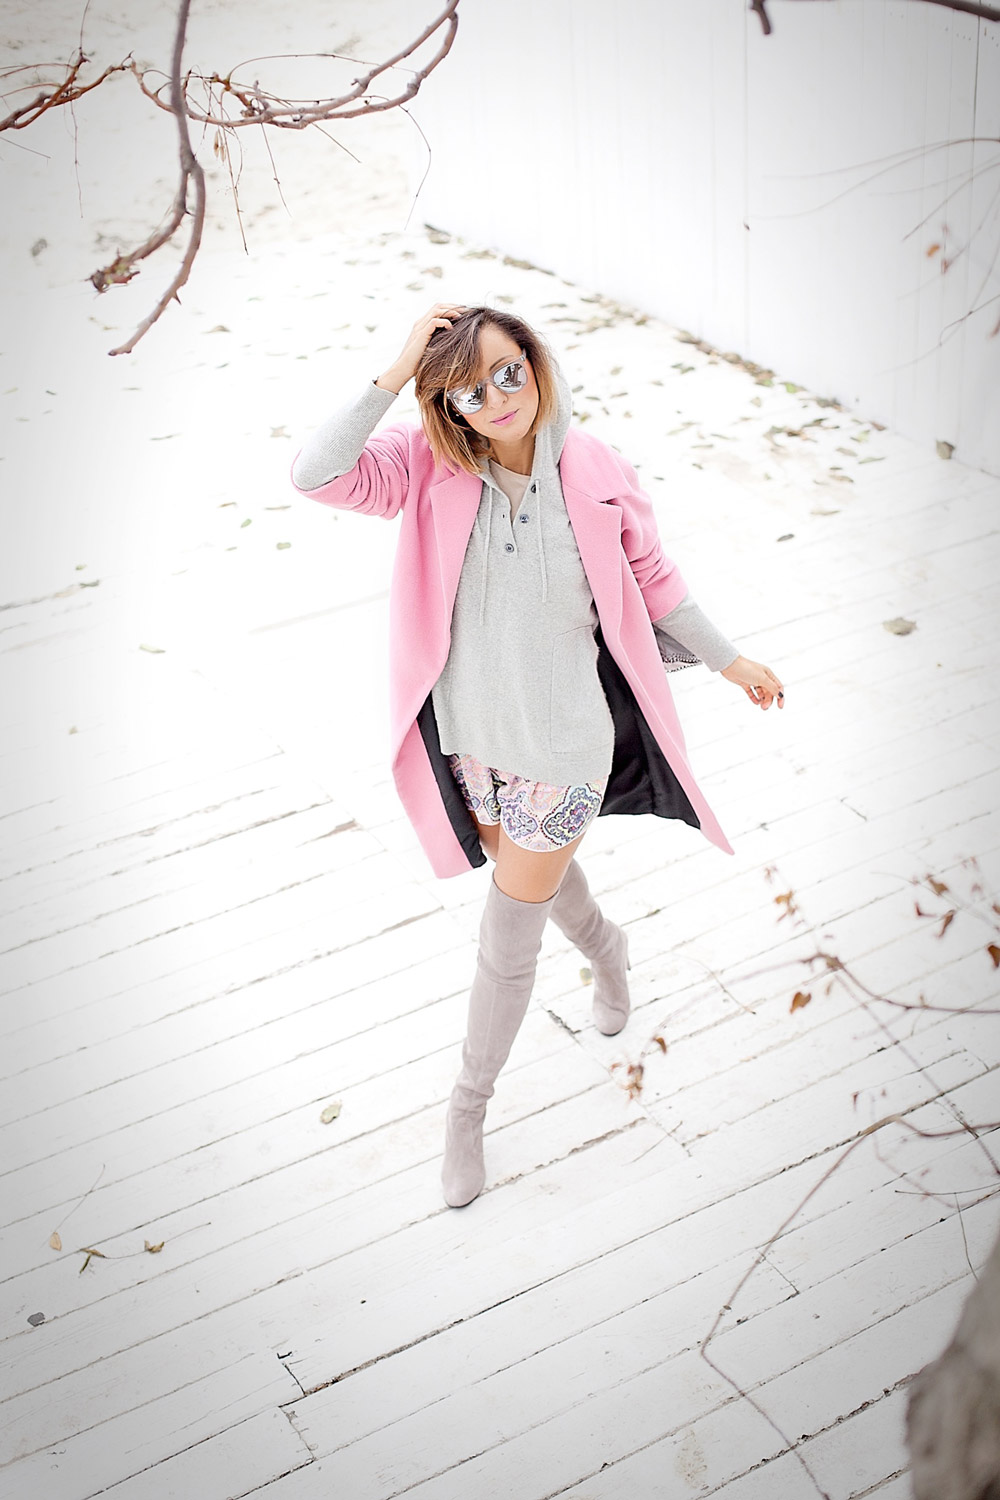 street+style+inspiration+for+fall-with+pink+coat